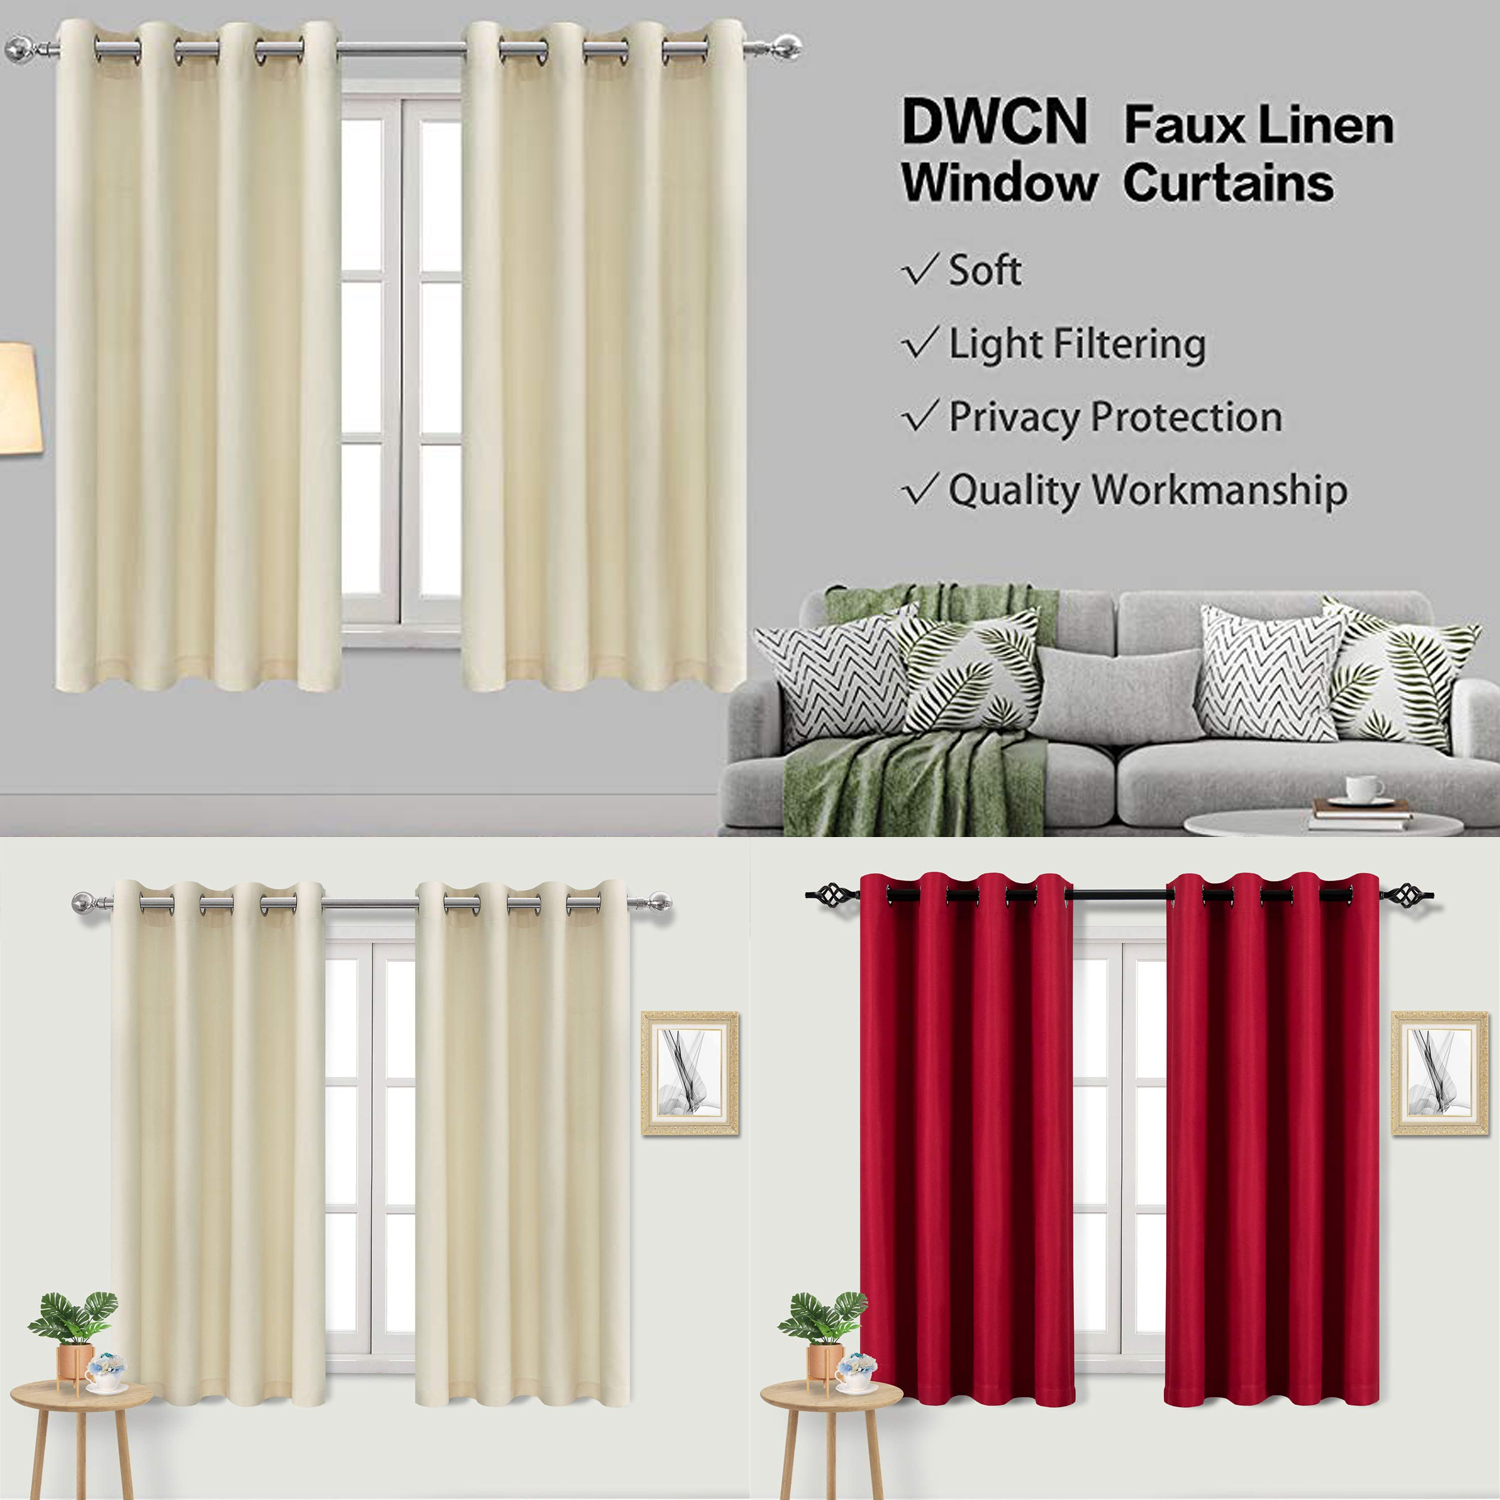 Details About Faux Linen Curtains Room Darkening Grommet 2 Panels Curtains Privacy Protection